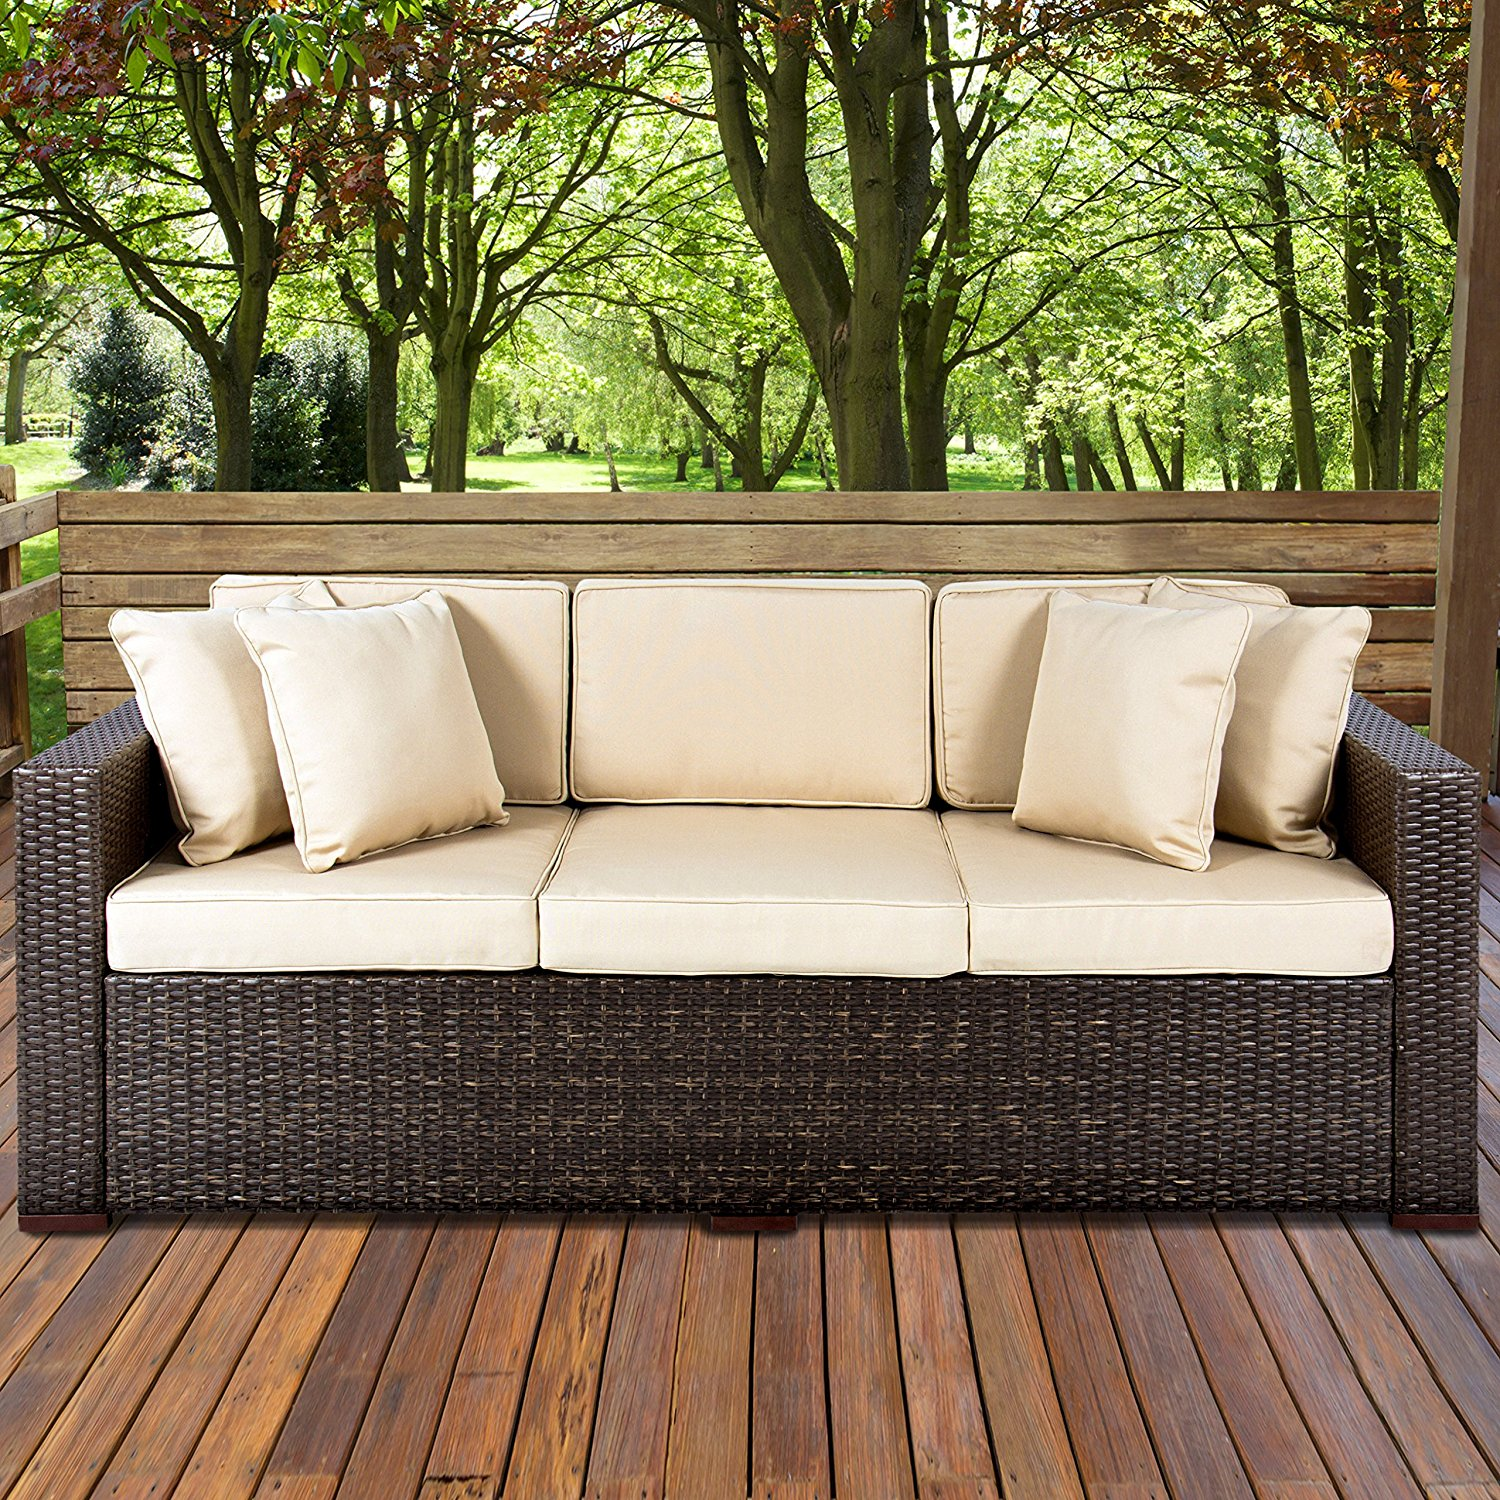 Top 10 Best Patio Sofas in 2020 - Top Best Pro Review on Outdoor Loveseat Sets  id=60104